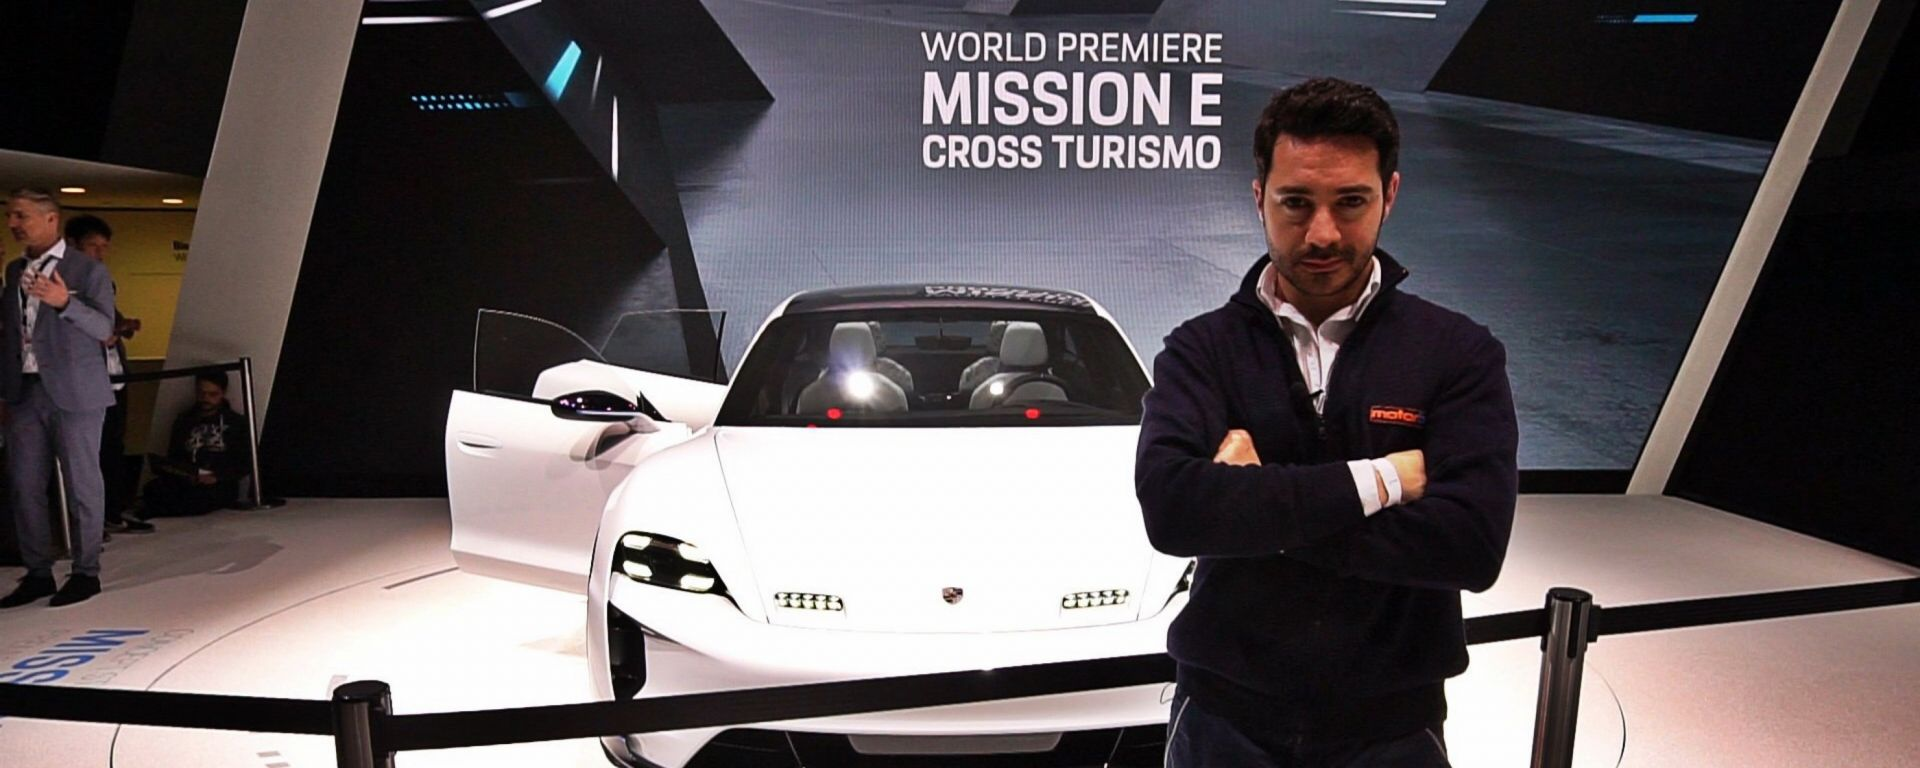 Porsche Mission E Cross Turismo Concept: in video dal Salone di Ginevra 2018